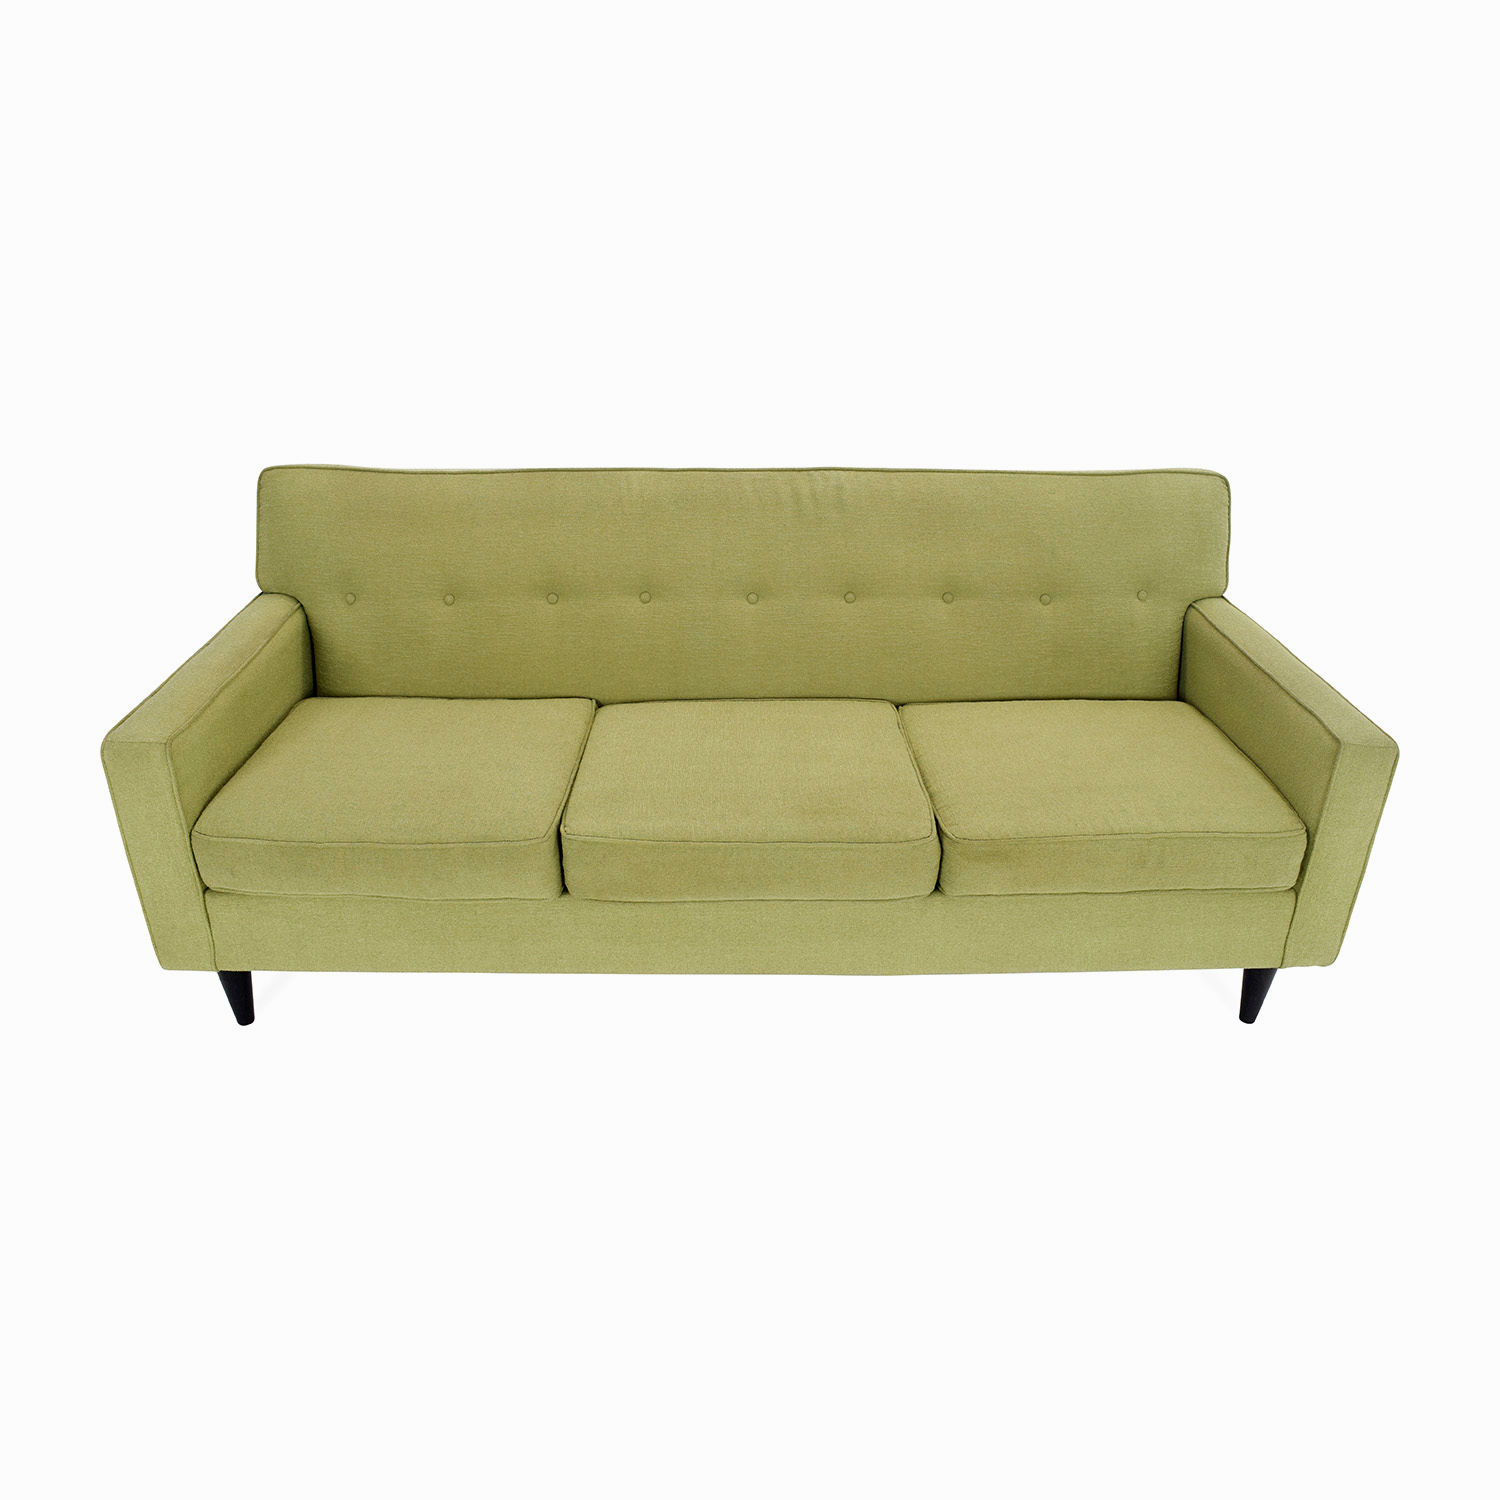 stunning sofa bed macys plan-Stunning sofa Bed Macys Collection